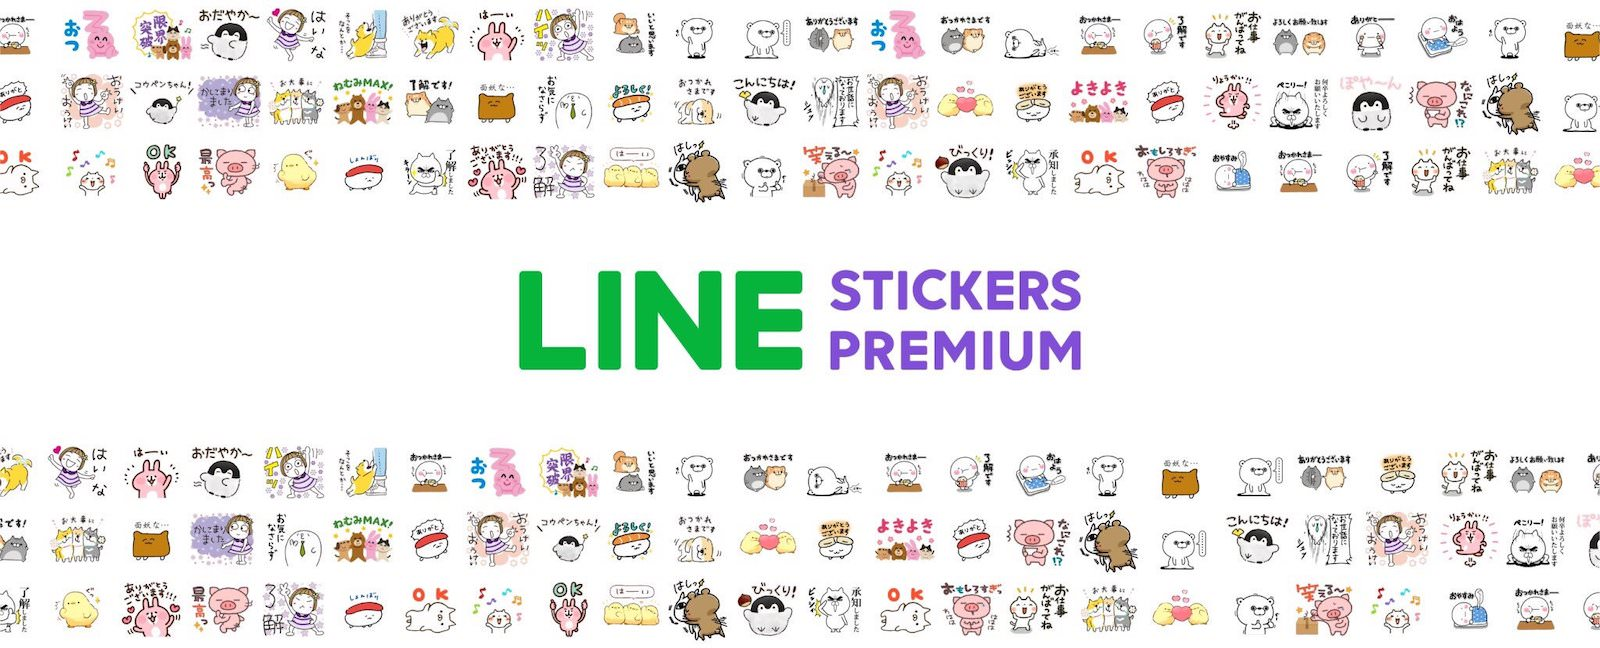 LINE Stickers Subscription model